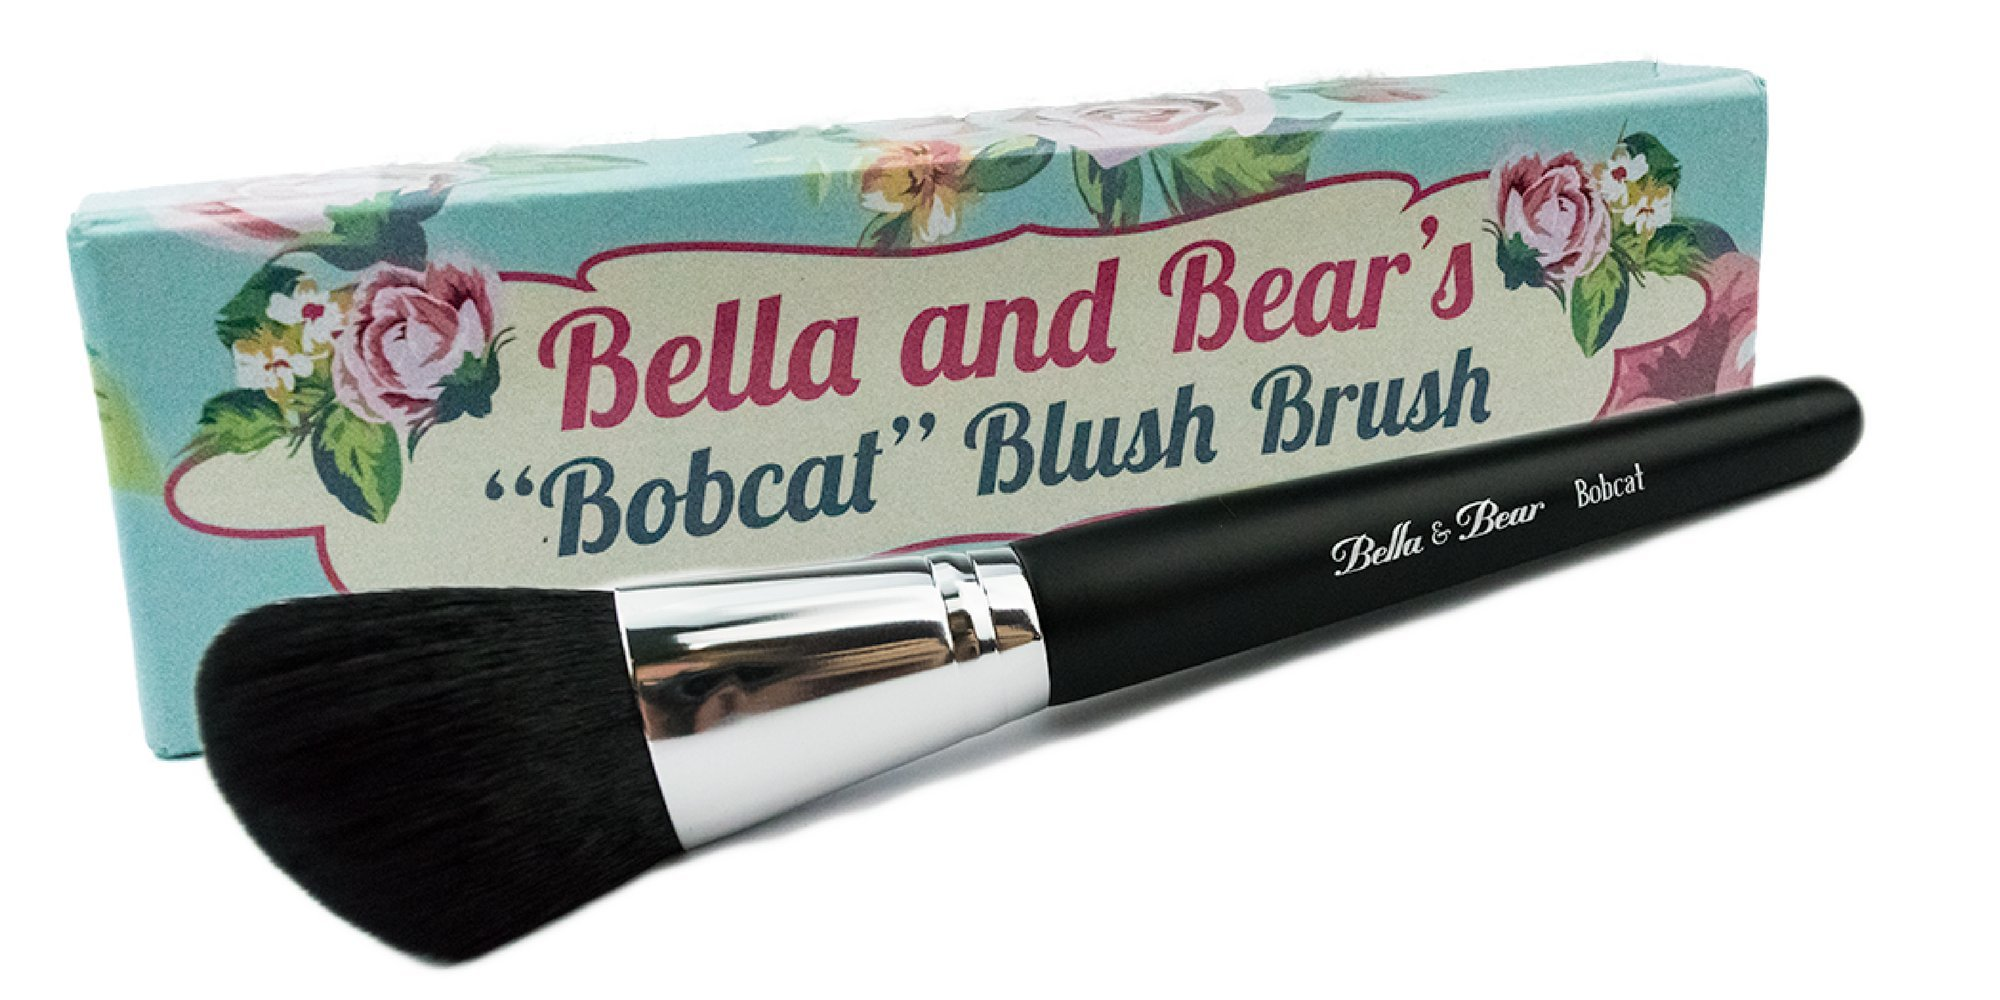 Blush Brush / Contour Brush by Bella & Bear- Our Best Makeup Brush for Applying Blush and Contouring Creams & Powders - Vegan Friendly